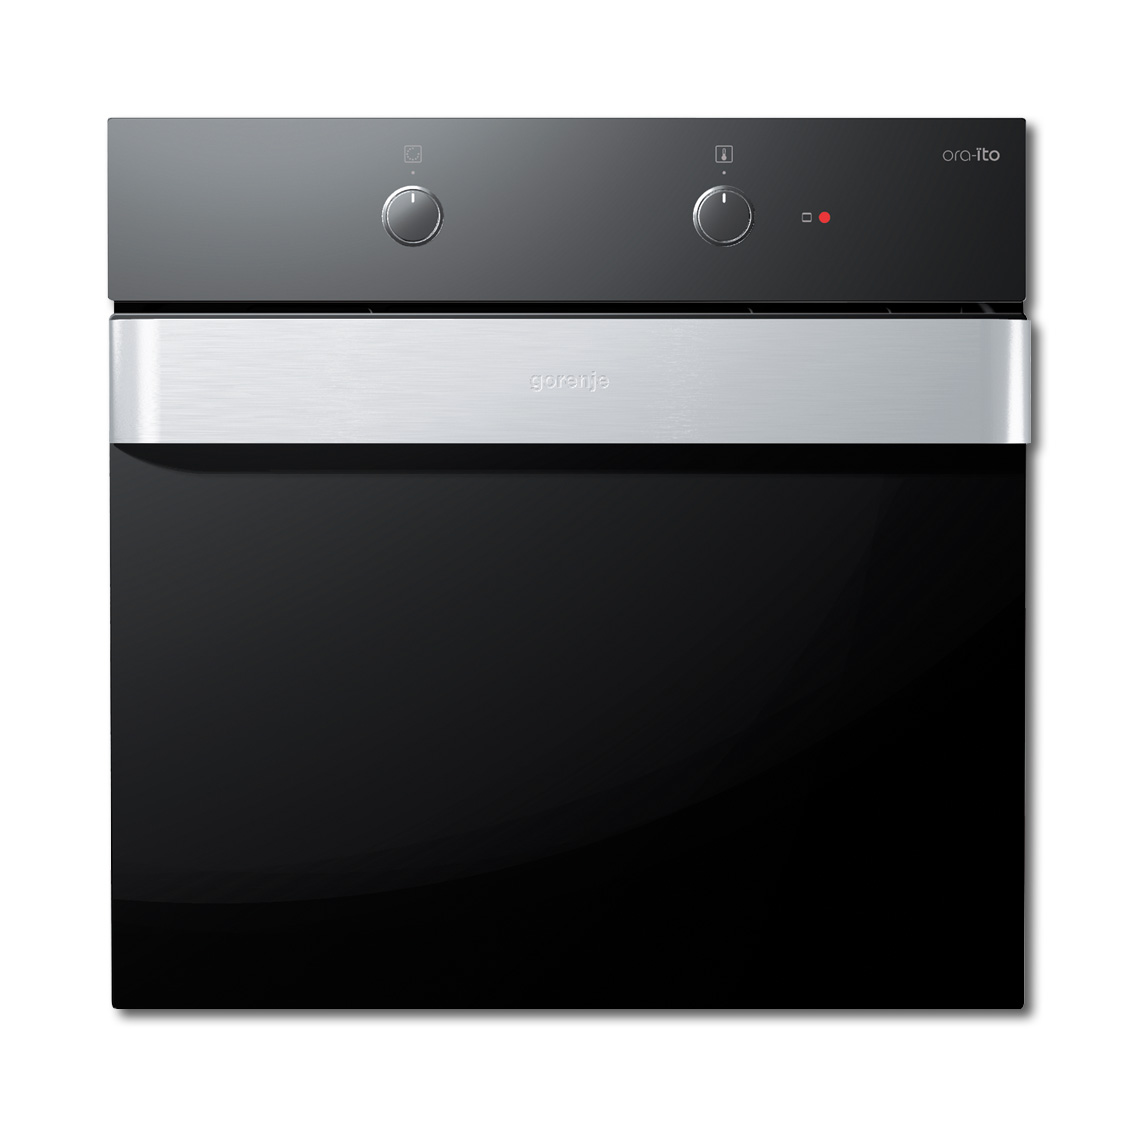 gorenje bo71orax ora ito multi f built in ovens. Black Bedroom Furniture Sets. Home Design Ideas